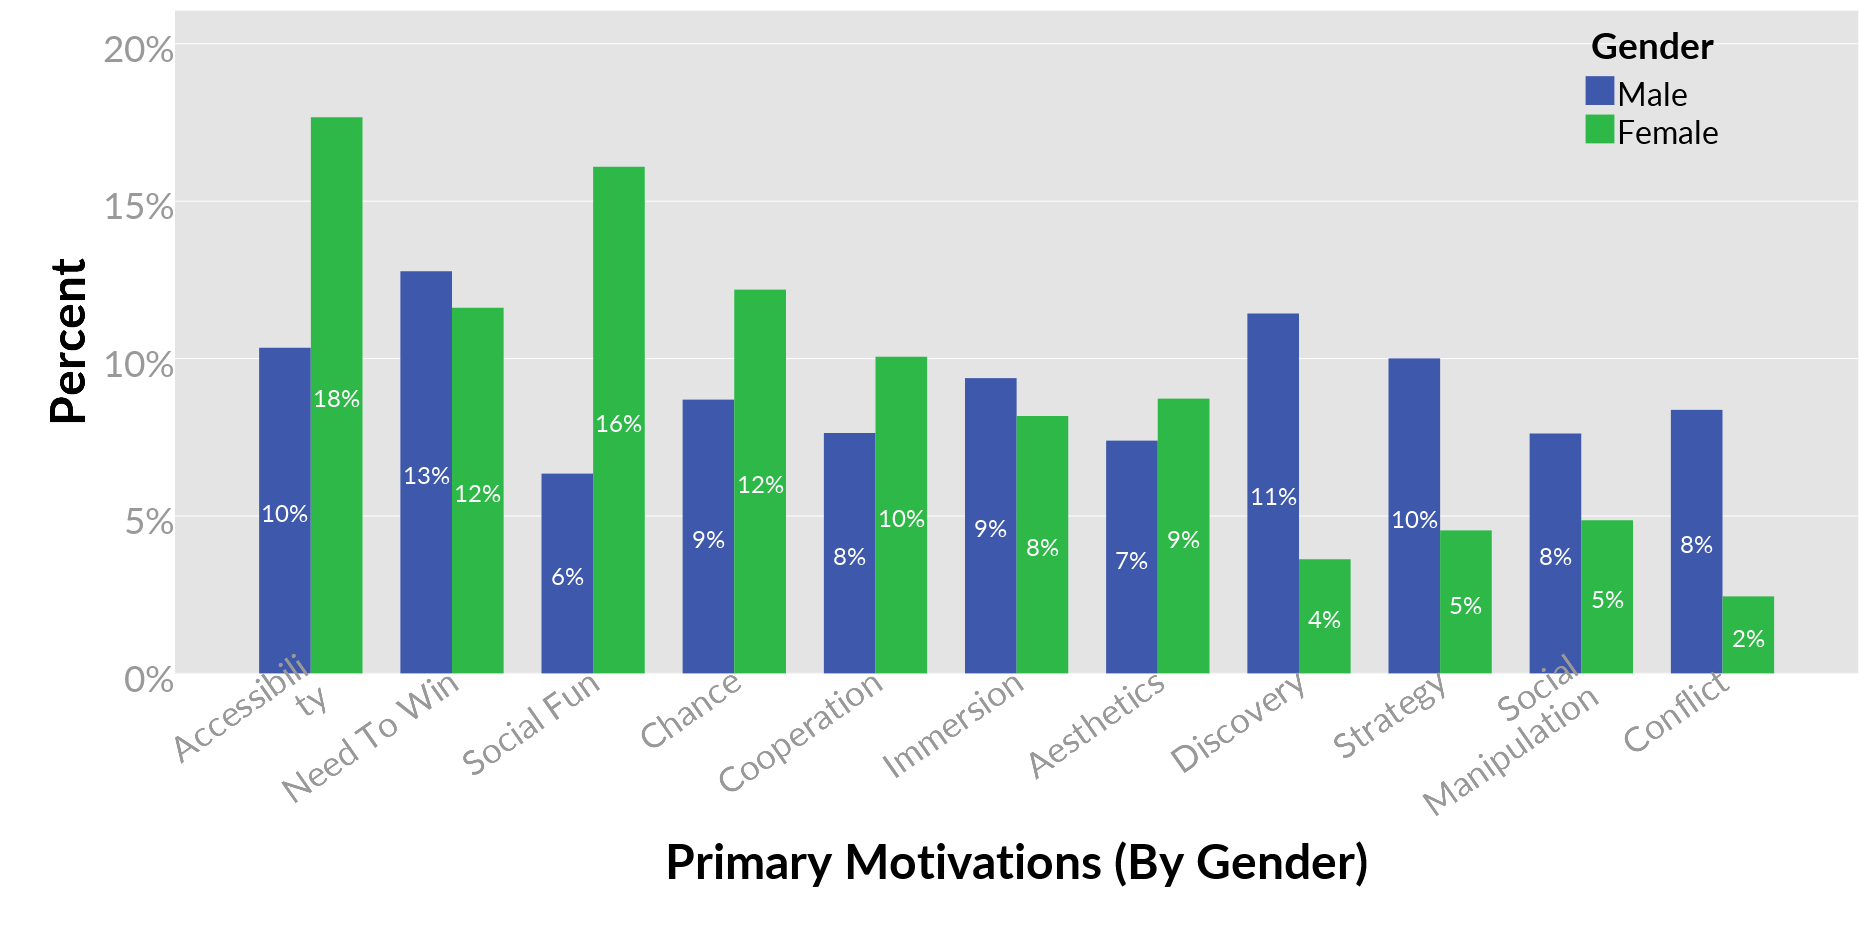 gender difference in motivation Gender differences in gaming motivations align with stereotypes, but small compared to age differences.